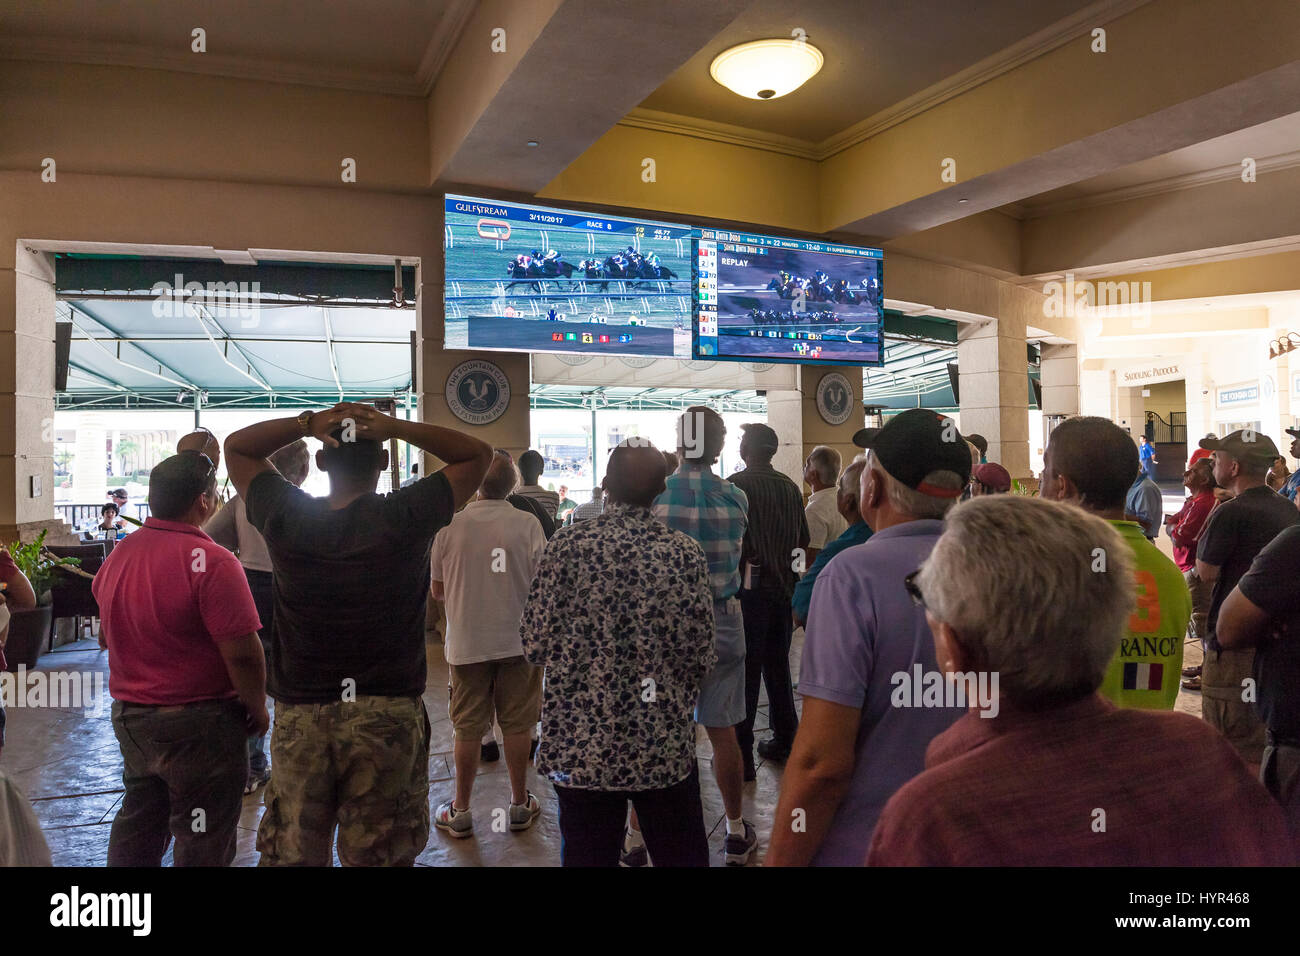 HALLANDALE BEACH, USA - MAR 11, 2017: People betting on horse races in the Gulfstream park casino in Hallandale - Stock Image